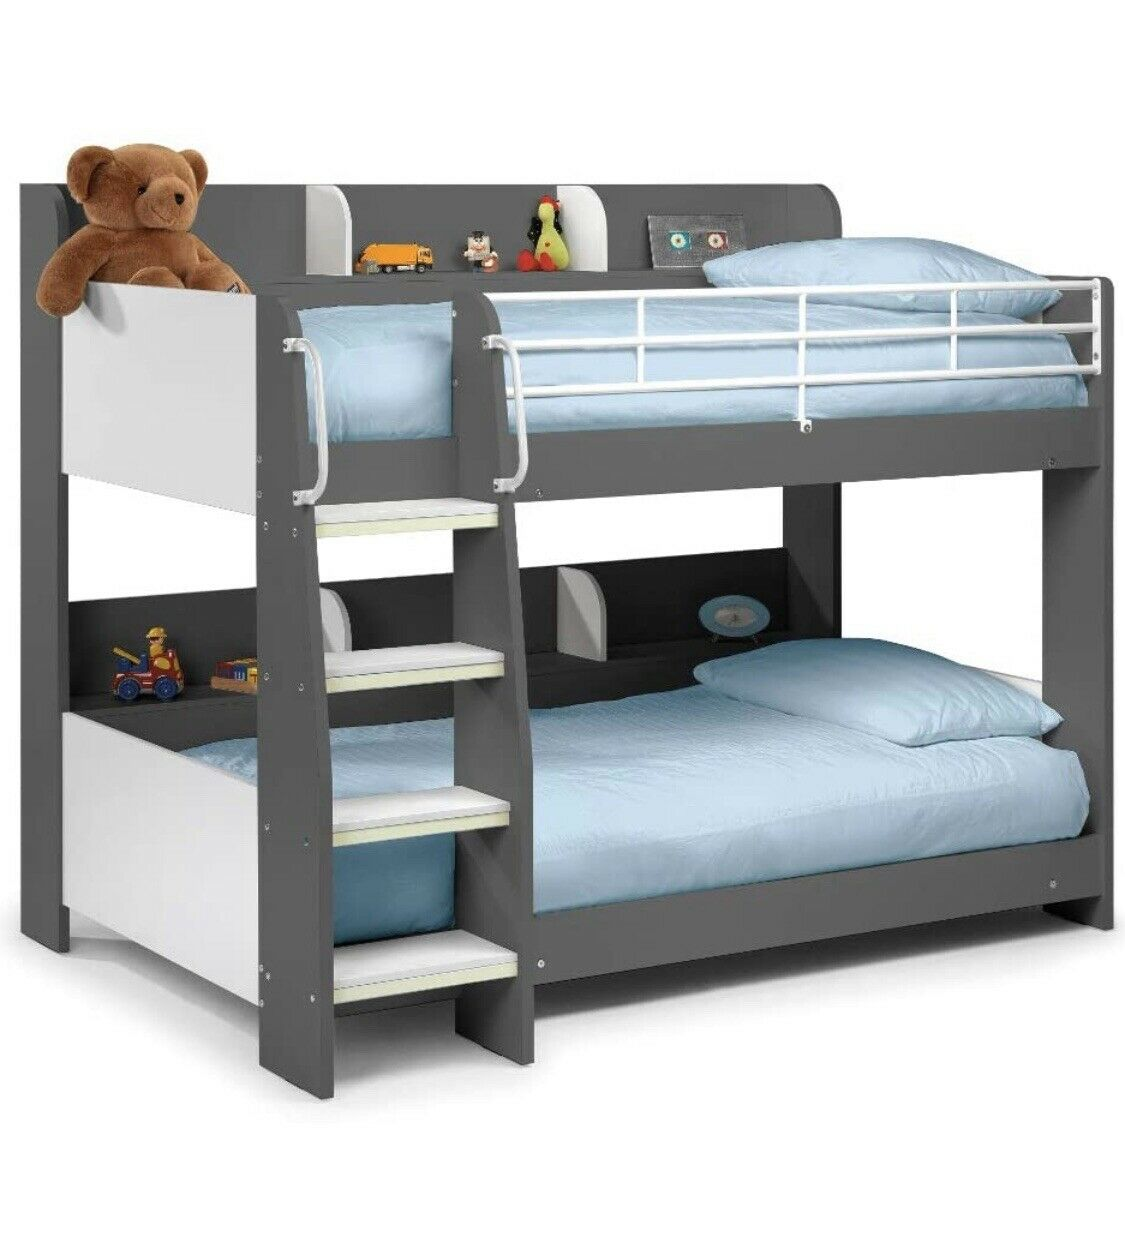 Picture of: Happy Beds Domino Oak Wooden And Metal Kids Storage Bunk Bed Modern Sleep Frame For Sale Ebay